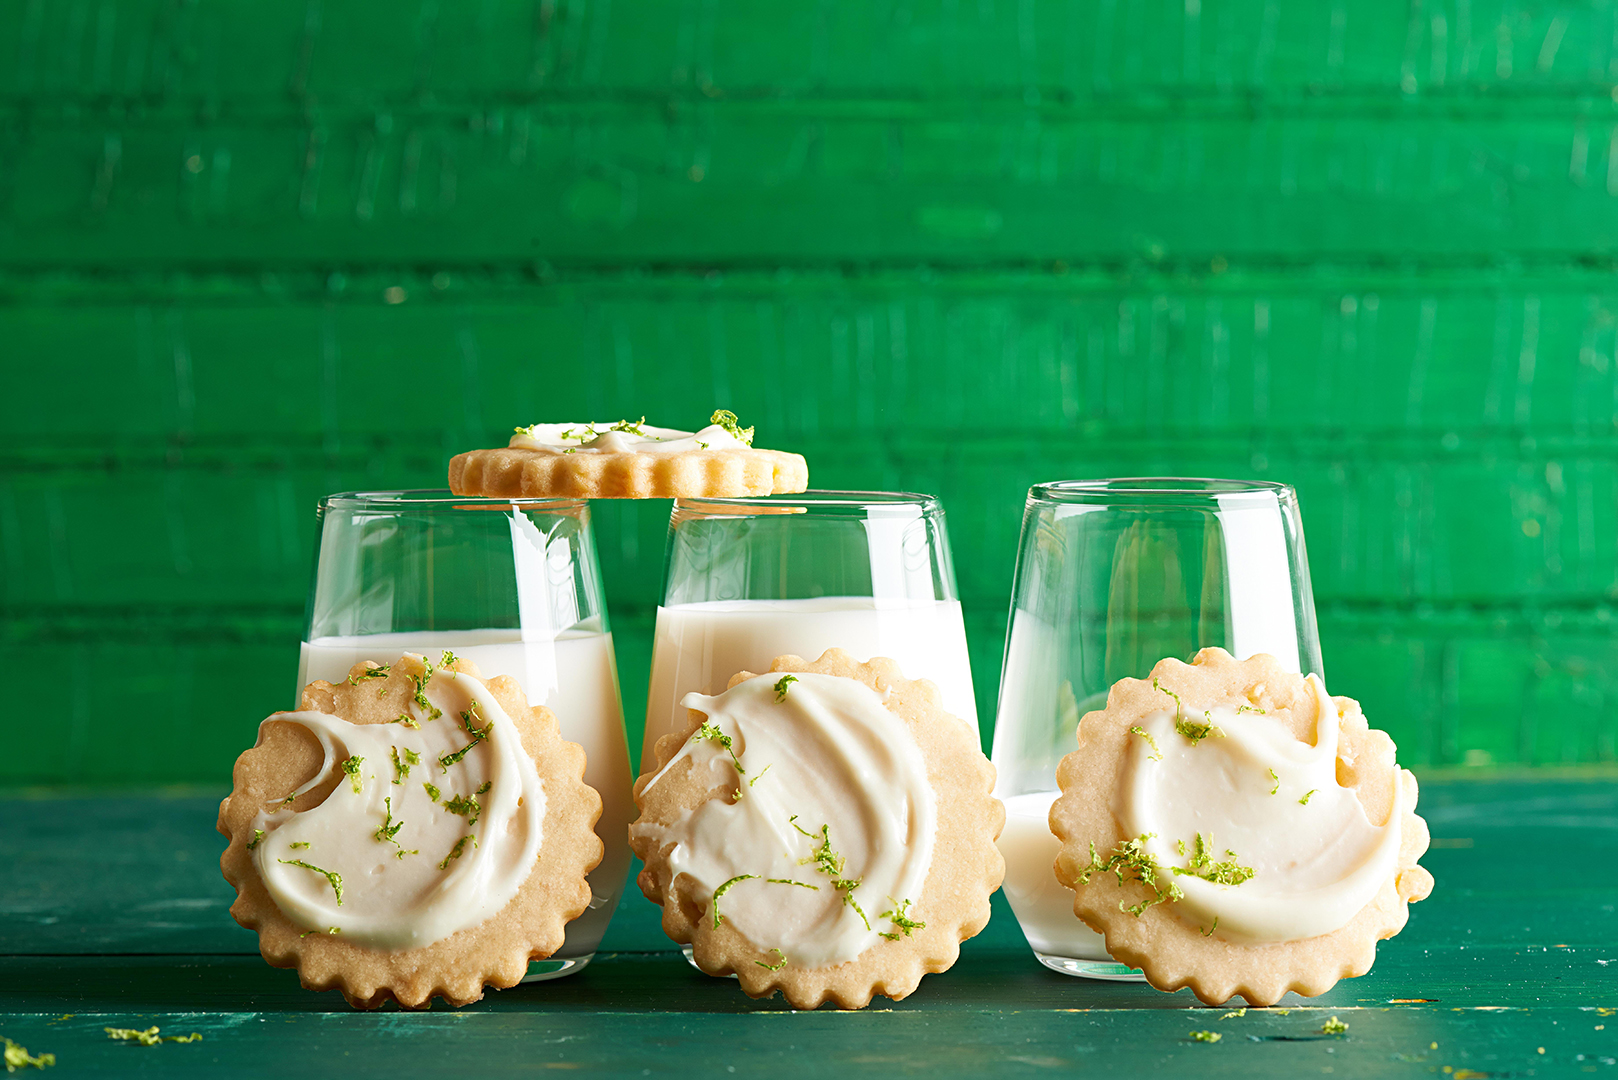 Lime Lights Cookies with glasses of milk